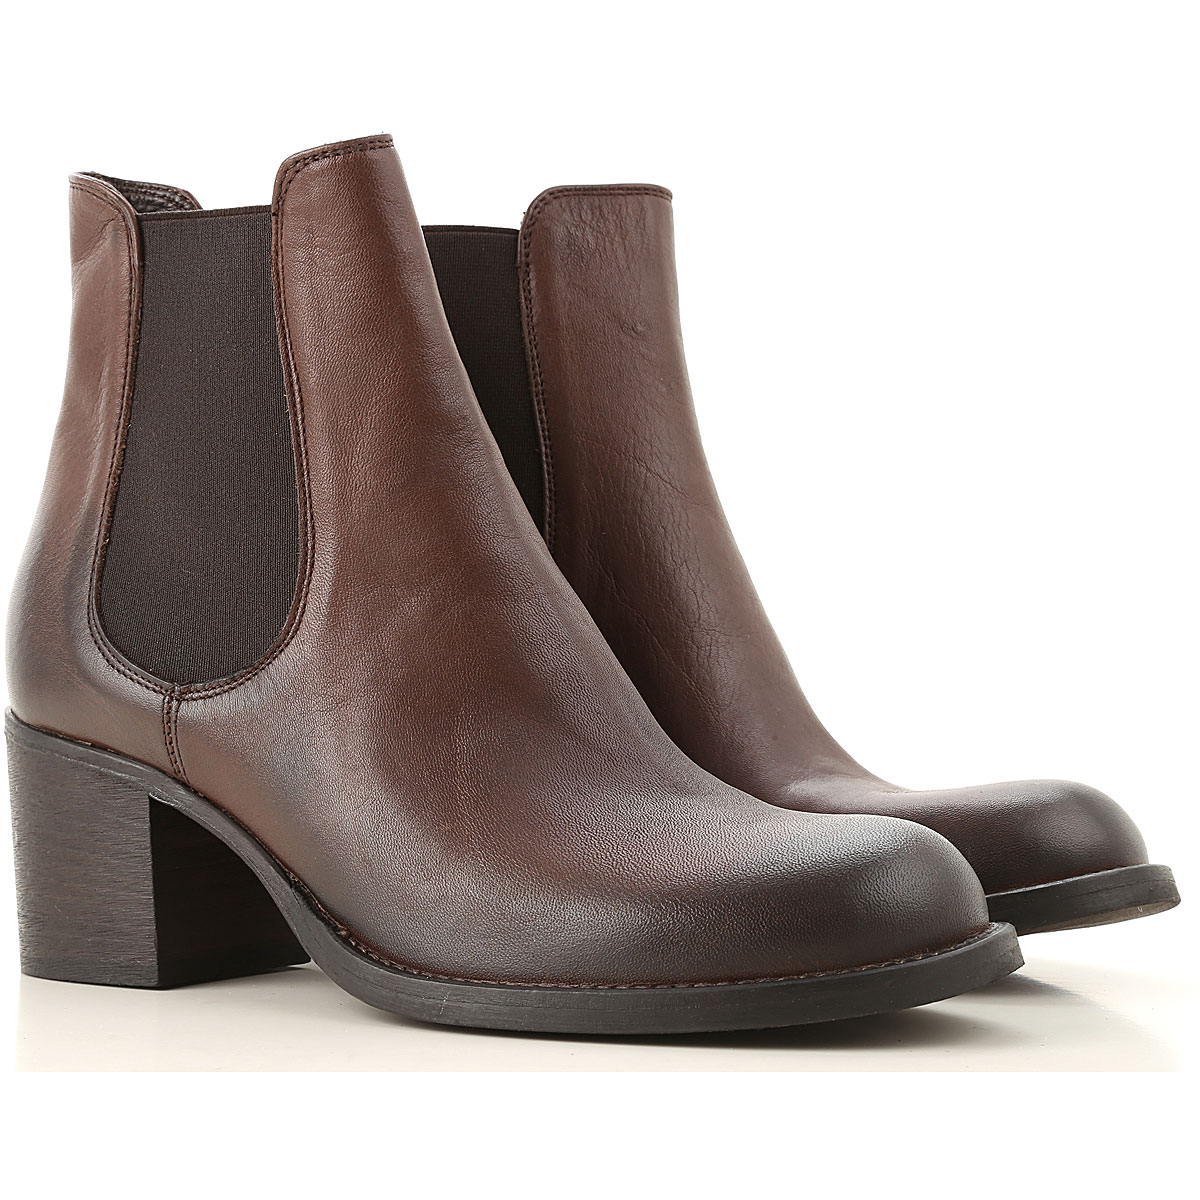 Strategia Chelsea Boots for Women On Sale, Dark Brown, Leather, 2019, 10 6 7 8 9